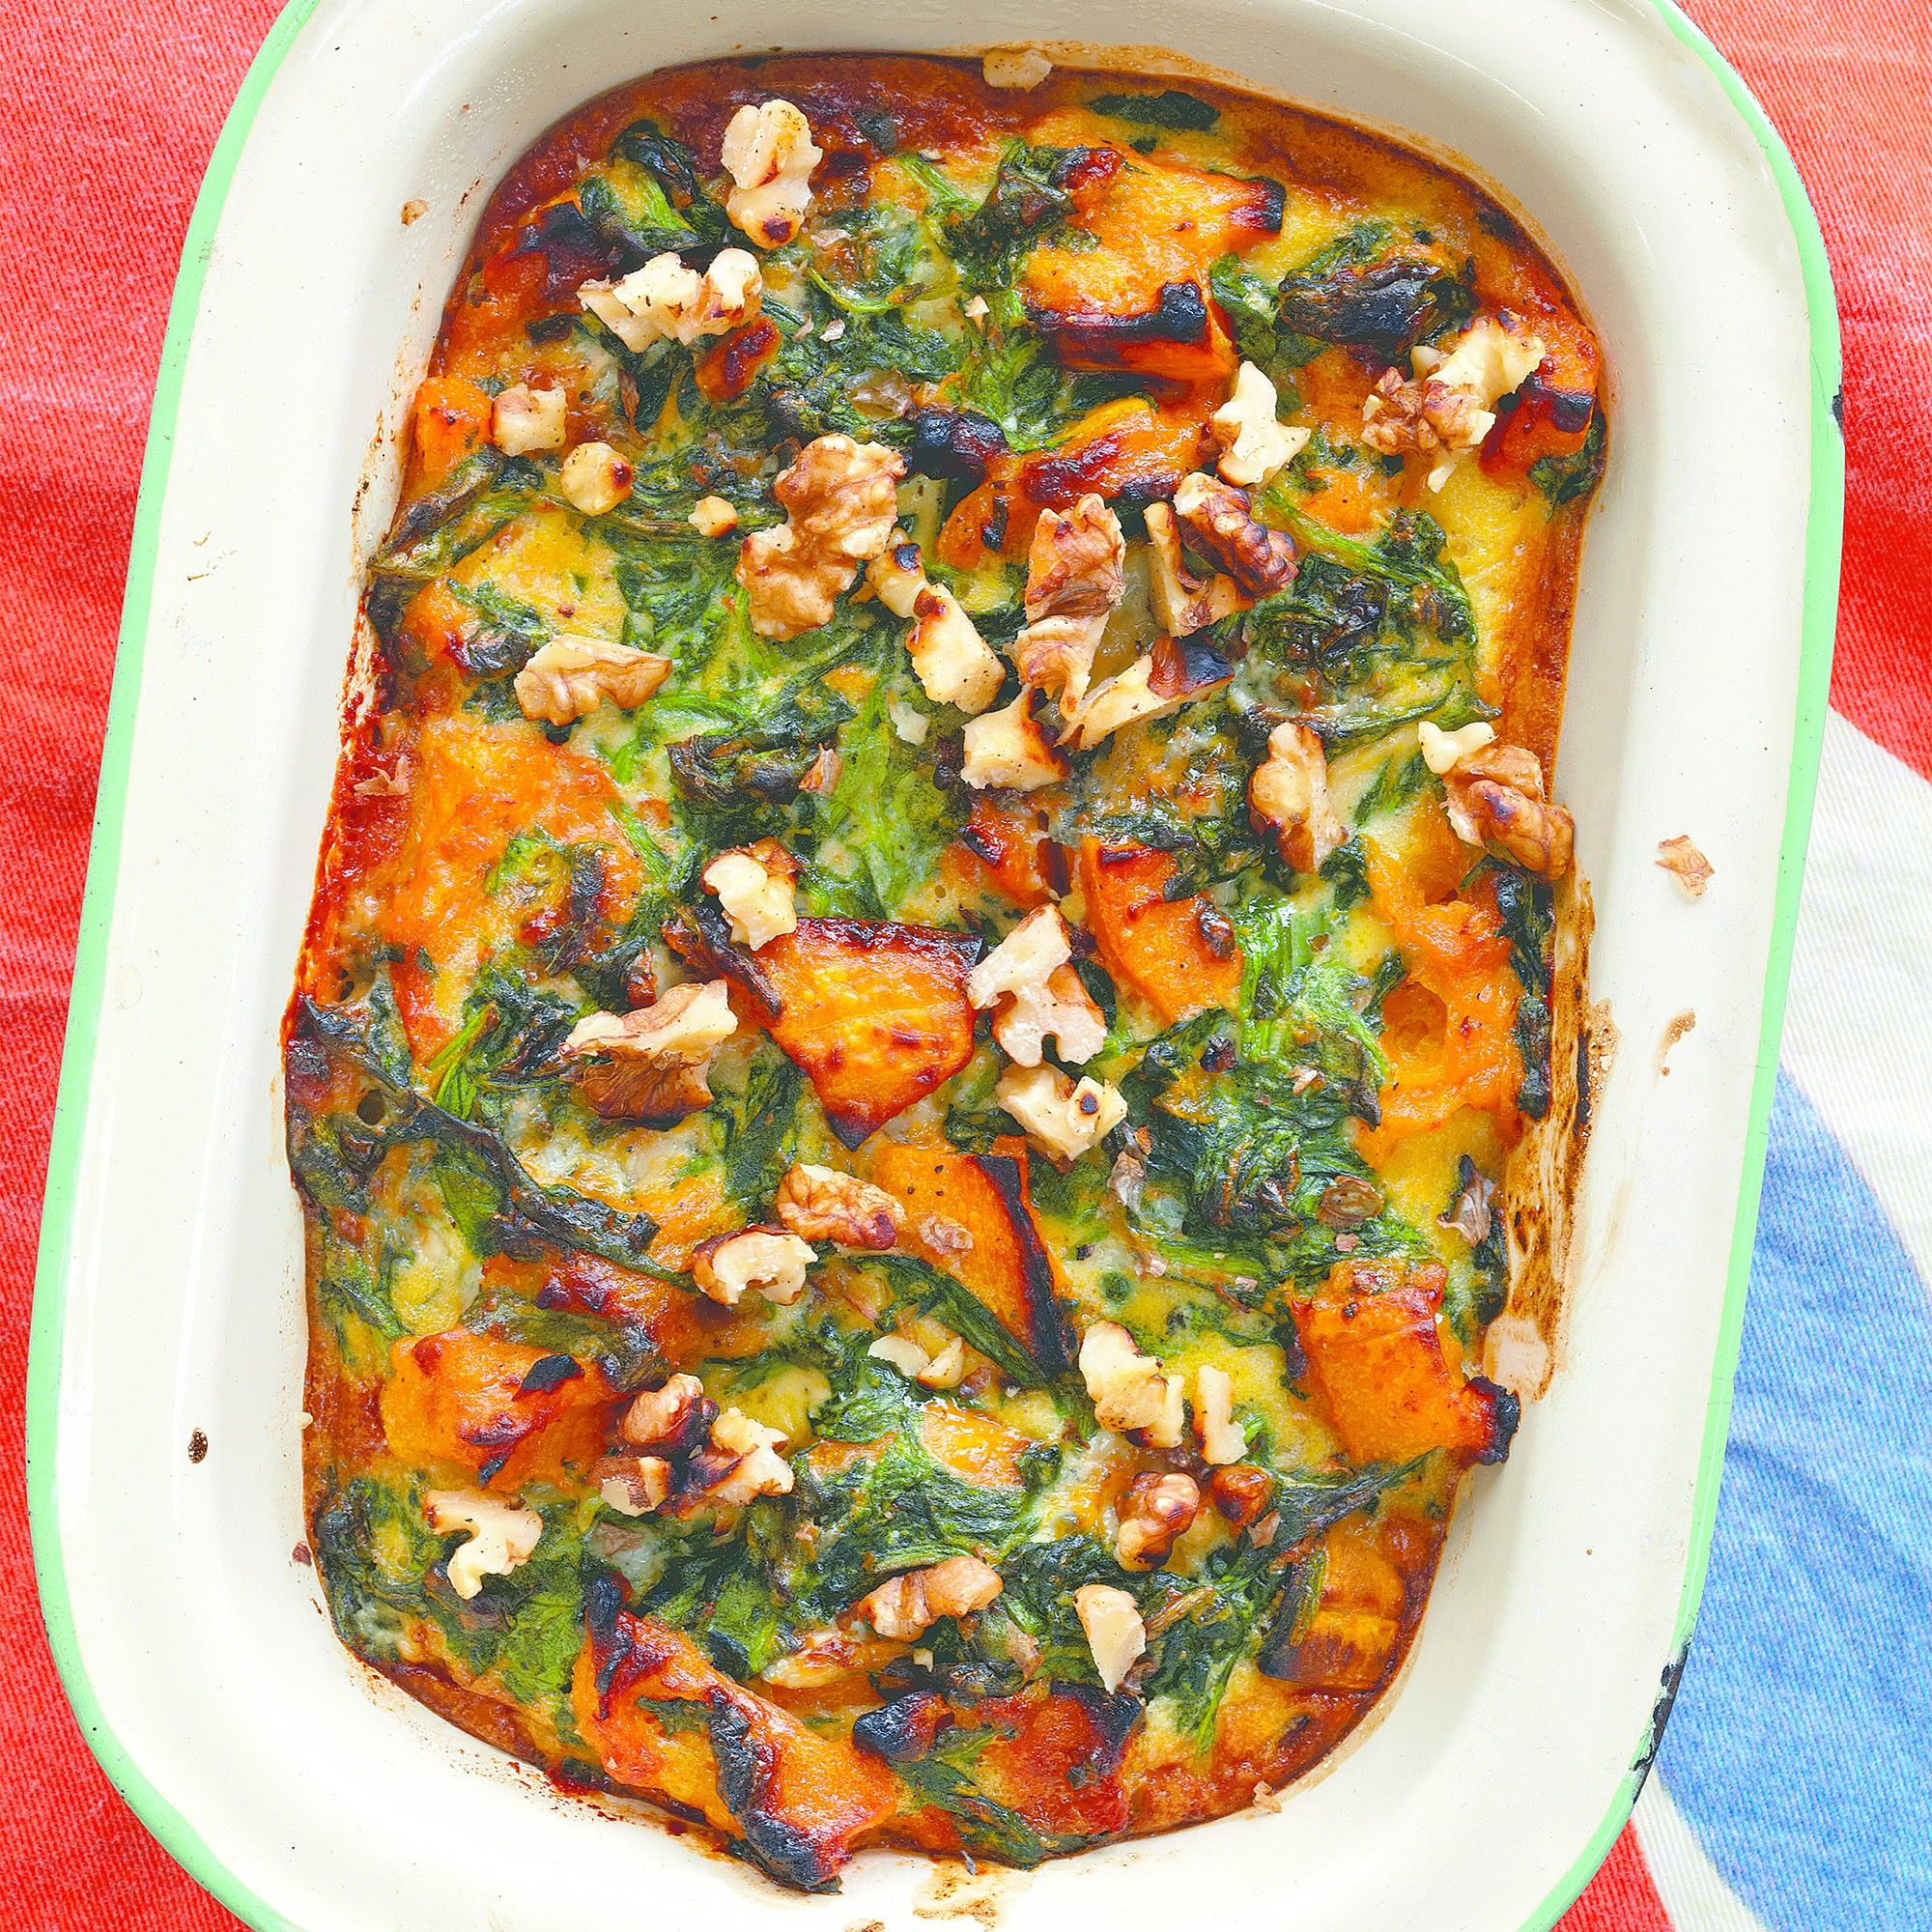 Taken from Leon: Fast Vegetarian by Jane Baxter and Henry Dimbleby, this is a simple bake combining some of our favourite flavours.